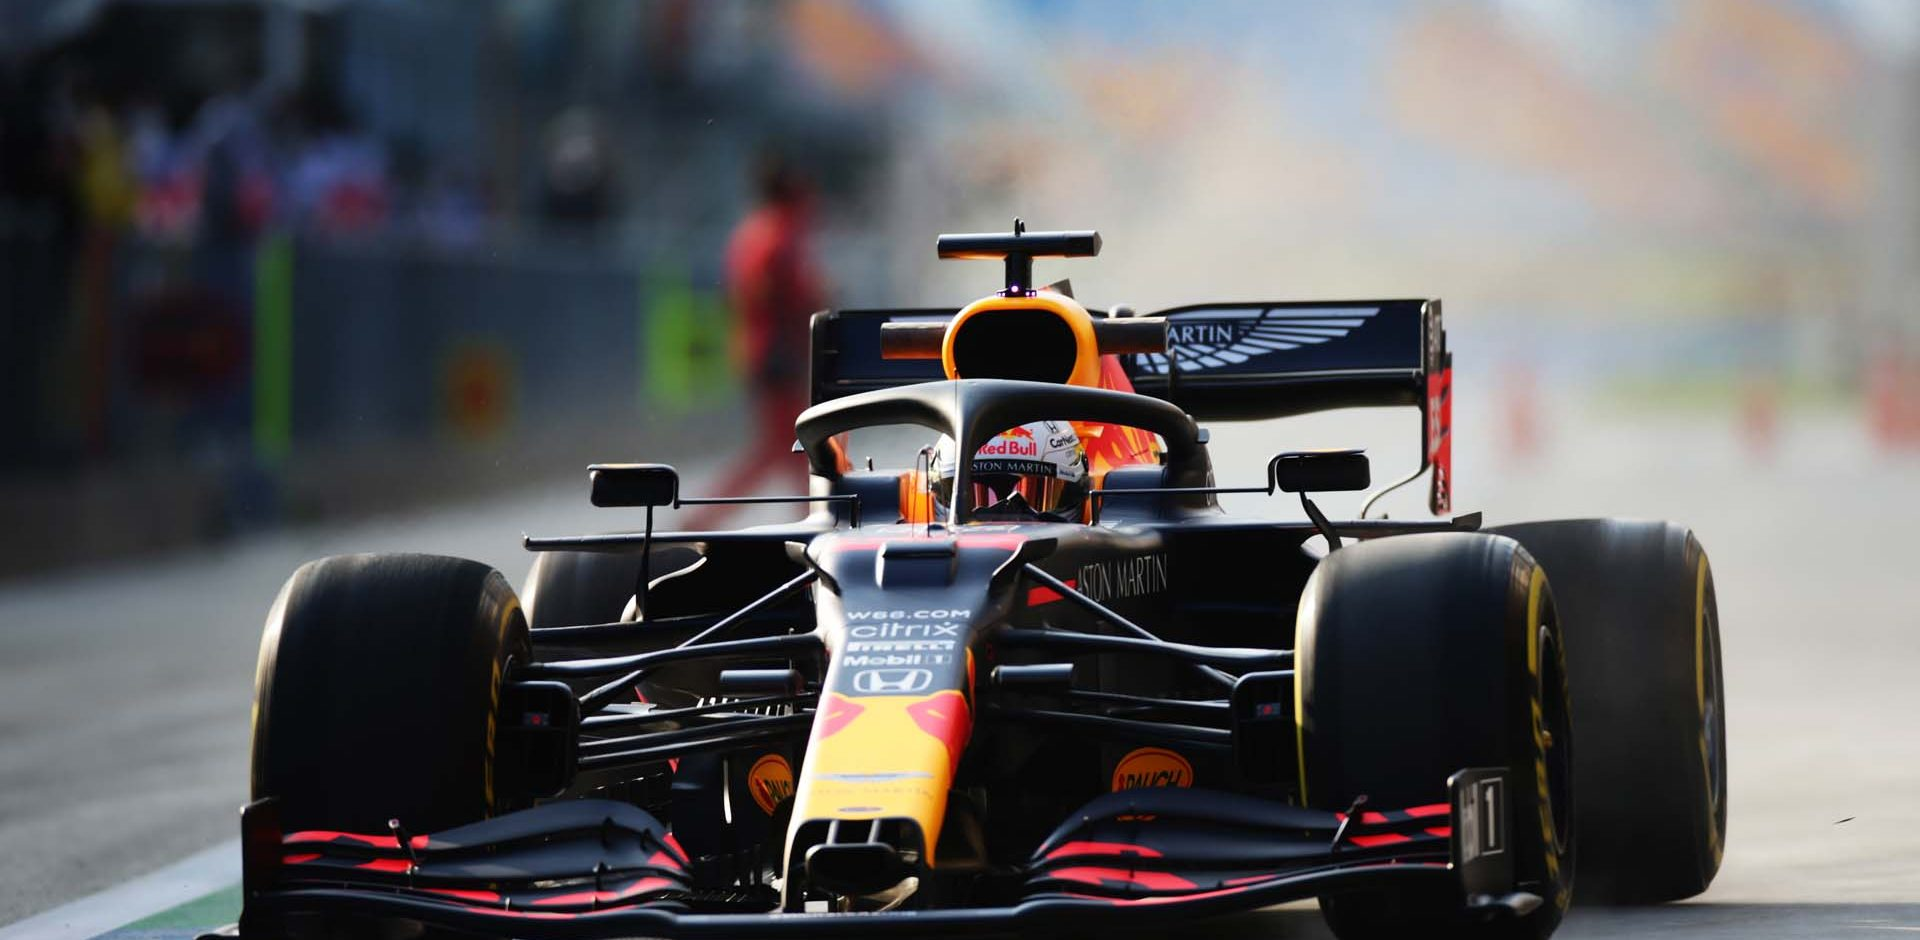 ISTANBUL, TURKEY - NOVEMBER 13: Max Verstappen of the Netherlands driving the (33) Aston Martin Red Bull Racing RB16 in the Pitlane during practice ahead of the F1 Grand Prix of Turkey at Intercity Istanbul Park on November 13, 2020 in Istanbul, Turkey. (Photo by Peter Fox/Getty Images)